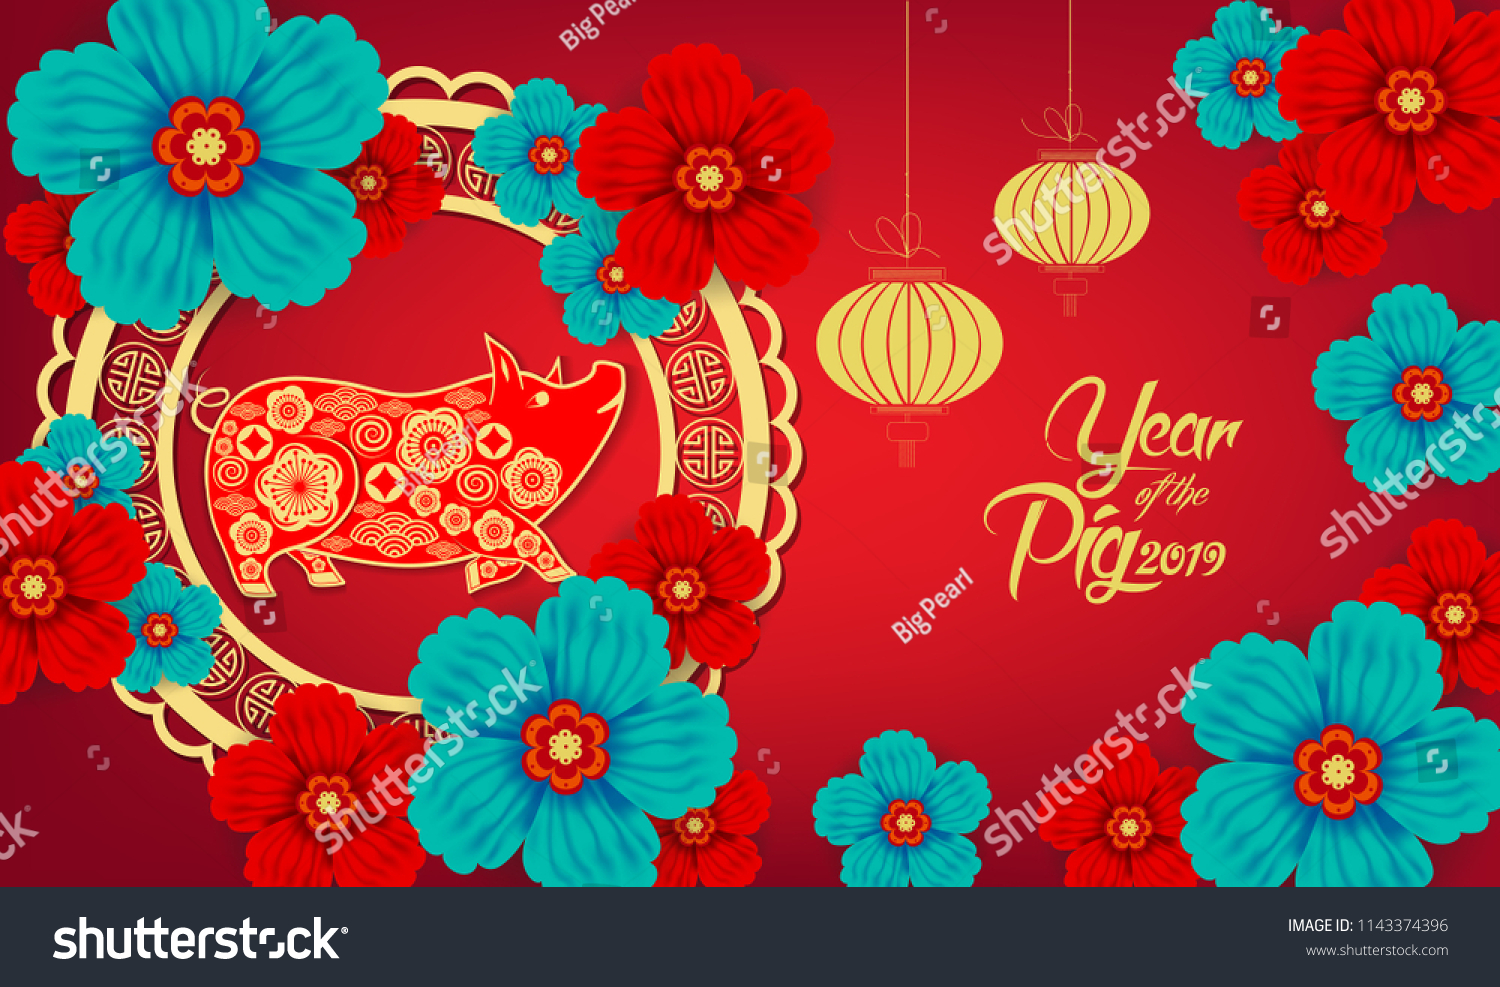 Happy Chinese New Year 2019 Year Stockillustration 1143374396